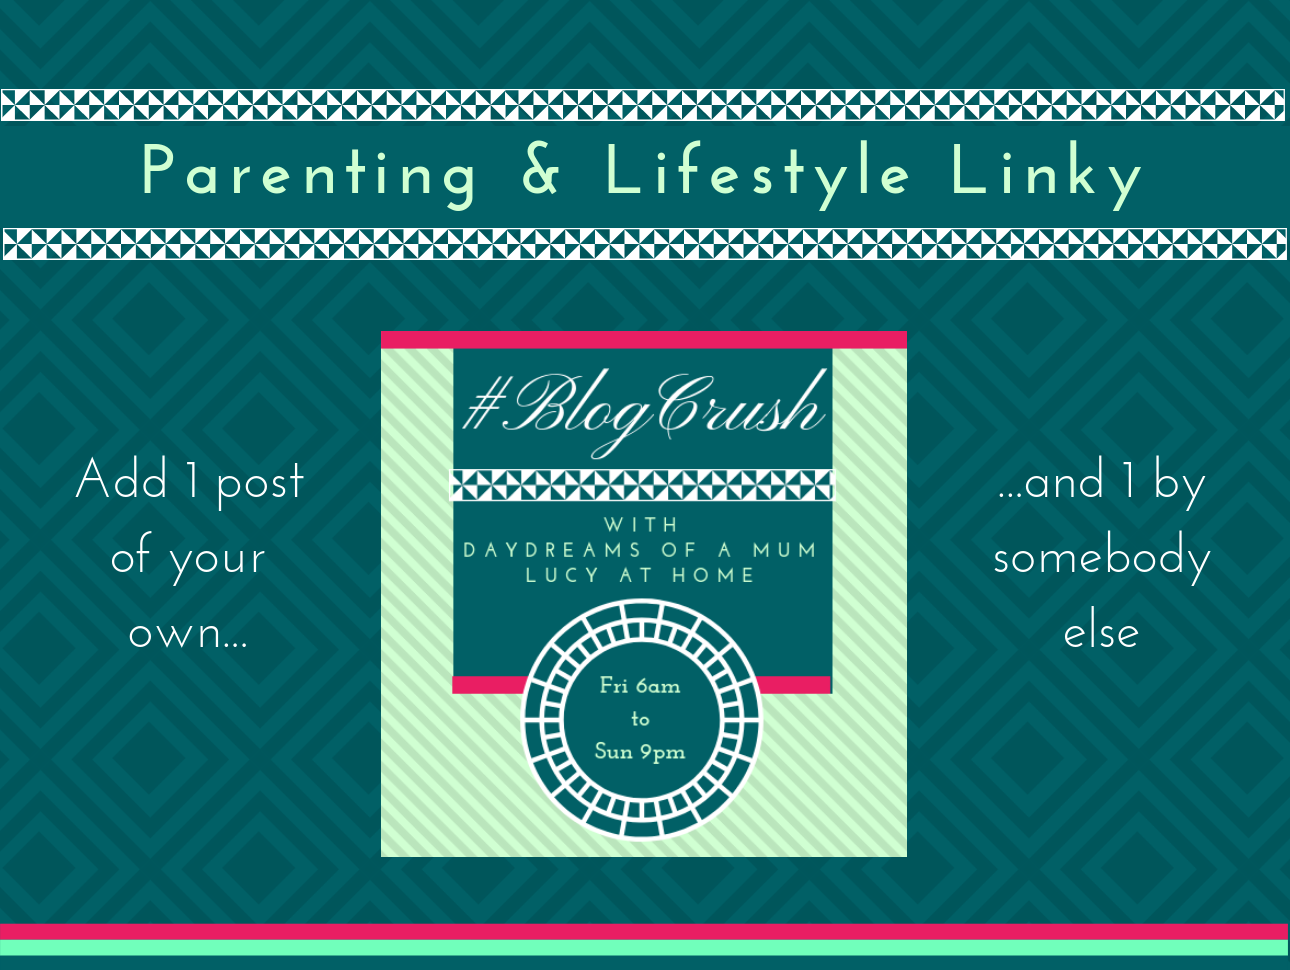 BlogCrush Linky Concept - BlogCrush Week 103